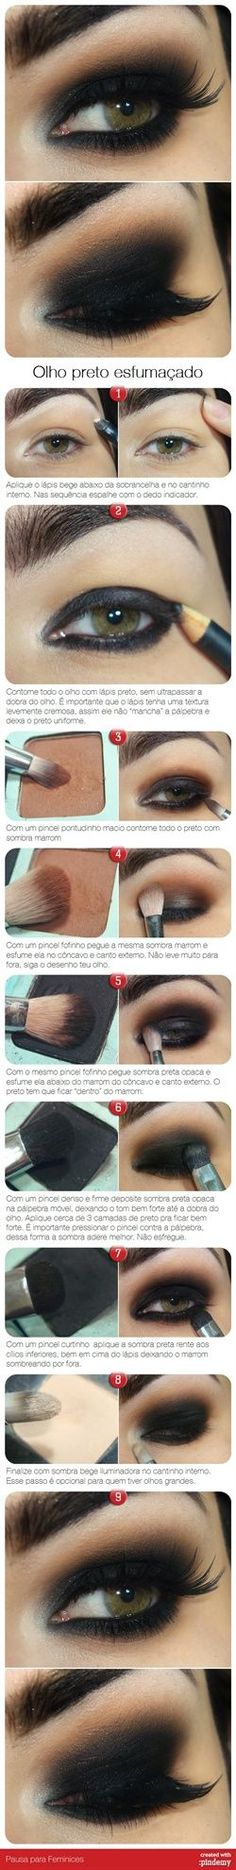 Olho preto esfumaçado | Eye makeup | Pinterest | Smokey Eye, Eyes and Natural Eyelash Growth